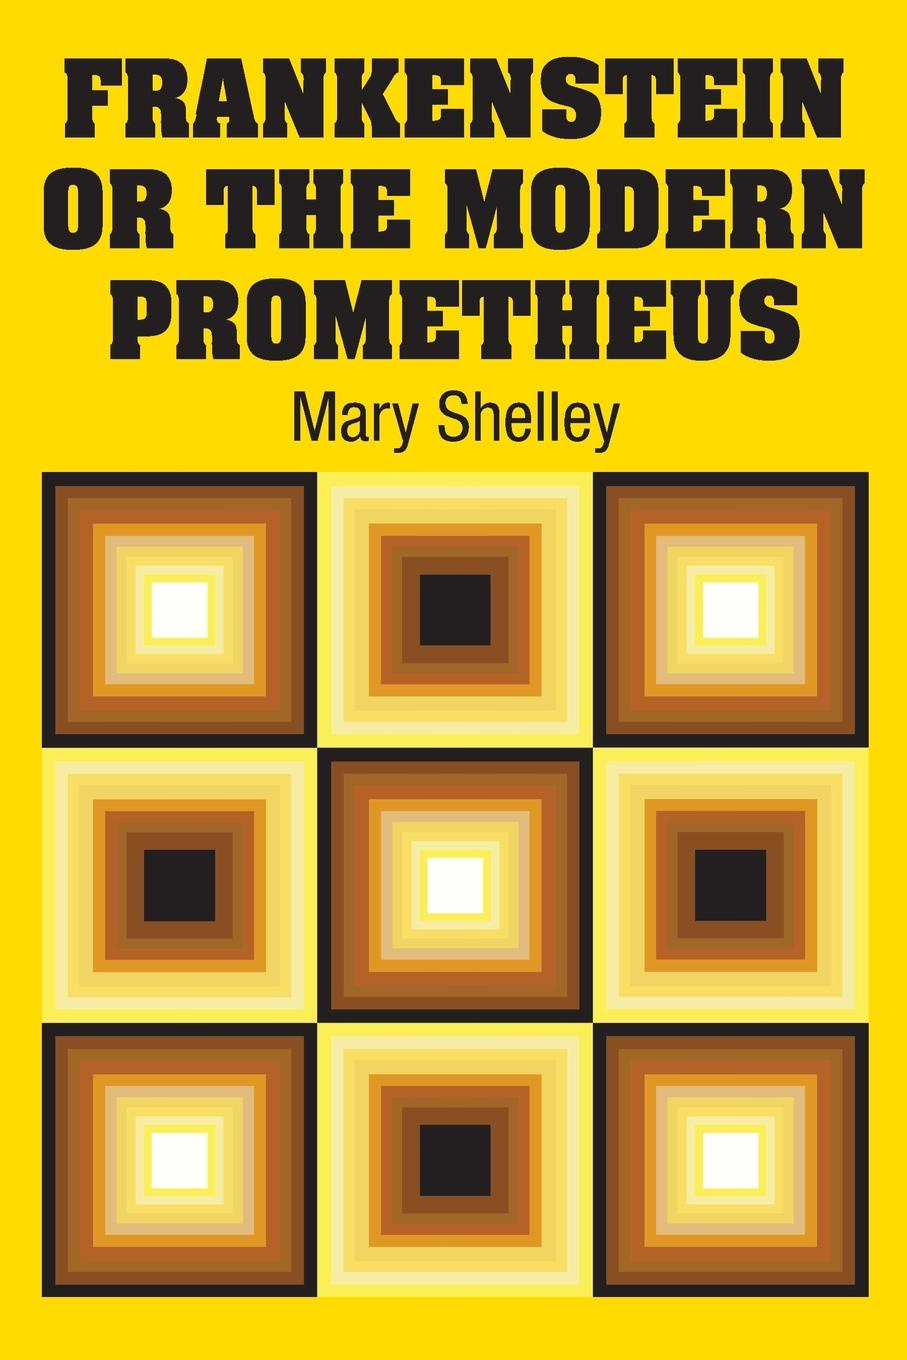 Mary Shelley Frankenstein or the Modern Prometheus facing the modern